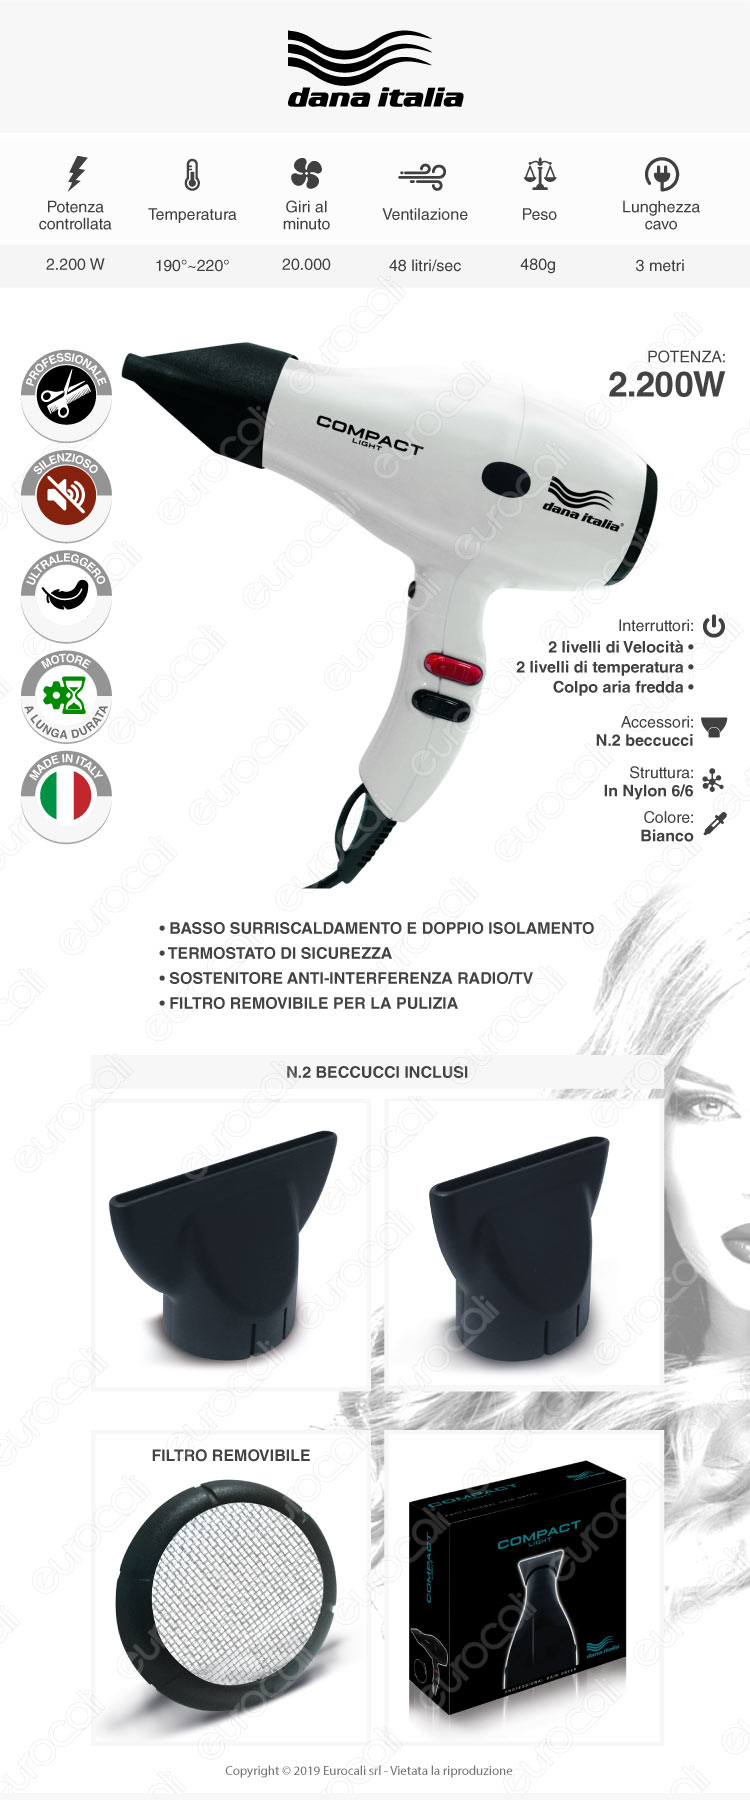 Dana Italia Compact Light Bianco - Asciugacapelli Professionale